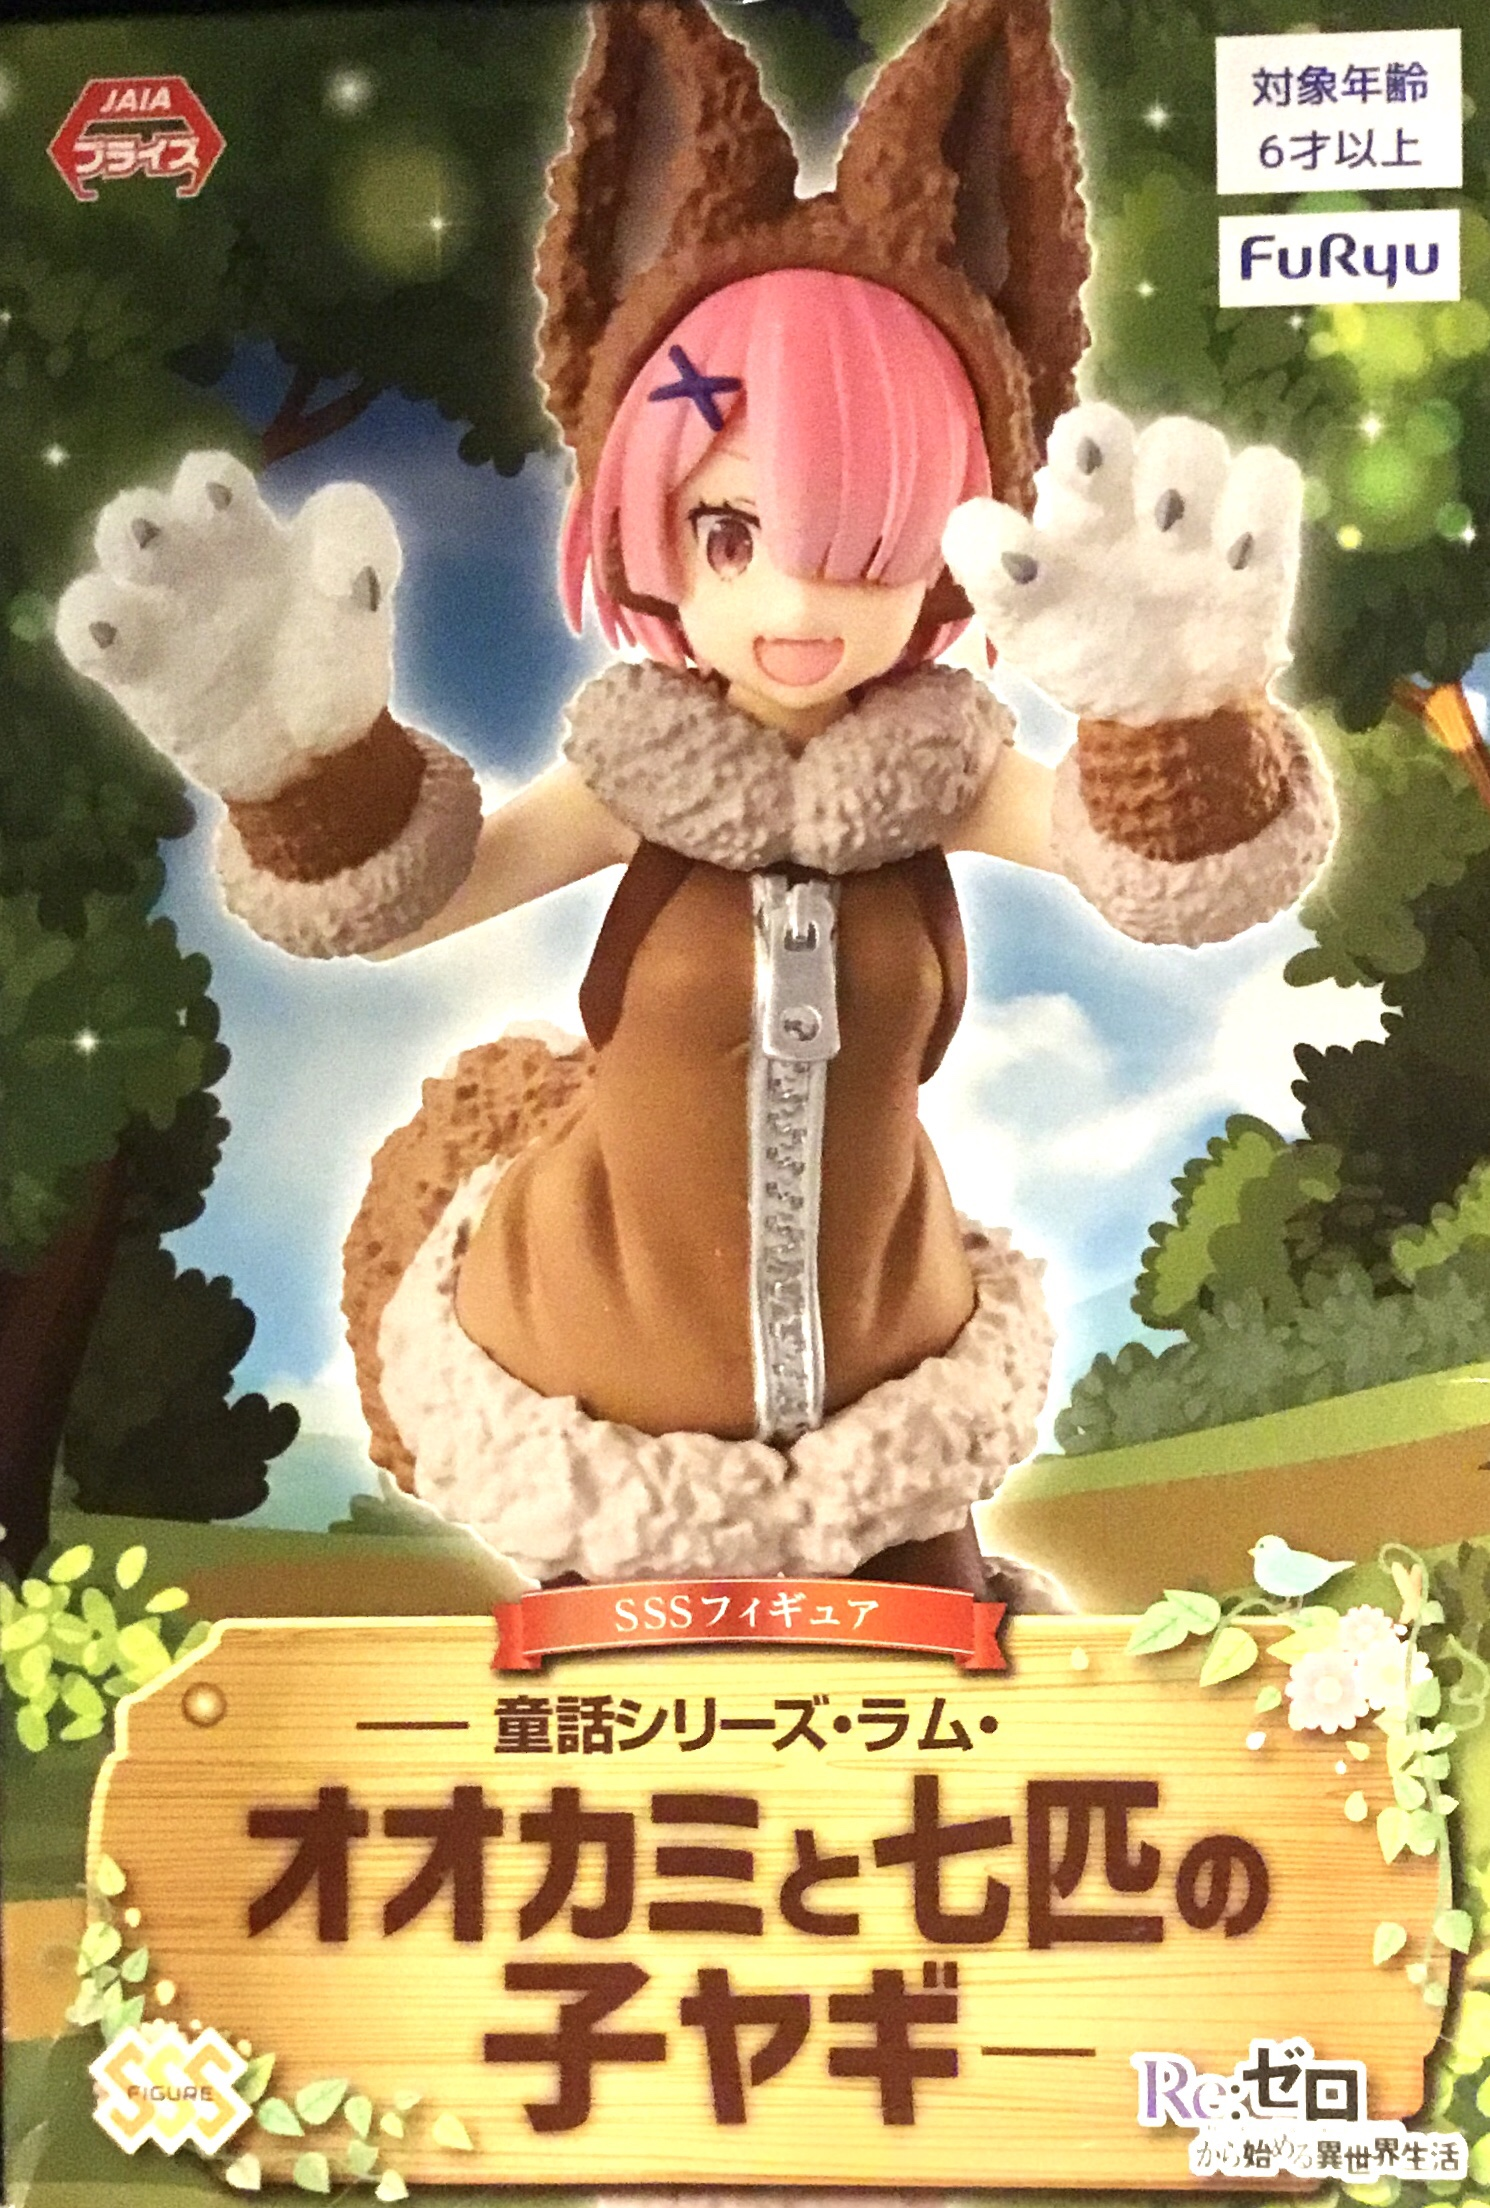 Re Zero Fairy Tale Series Ram Wolf and Goat SSS Figure FuRyu Prize